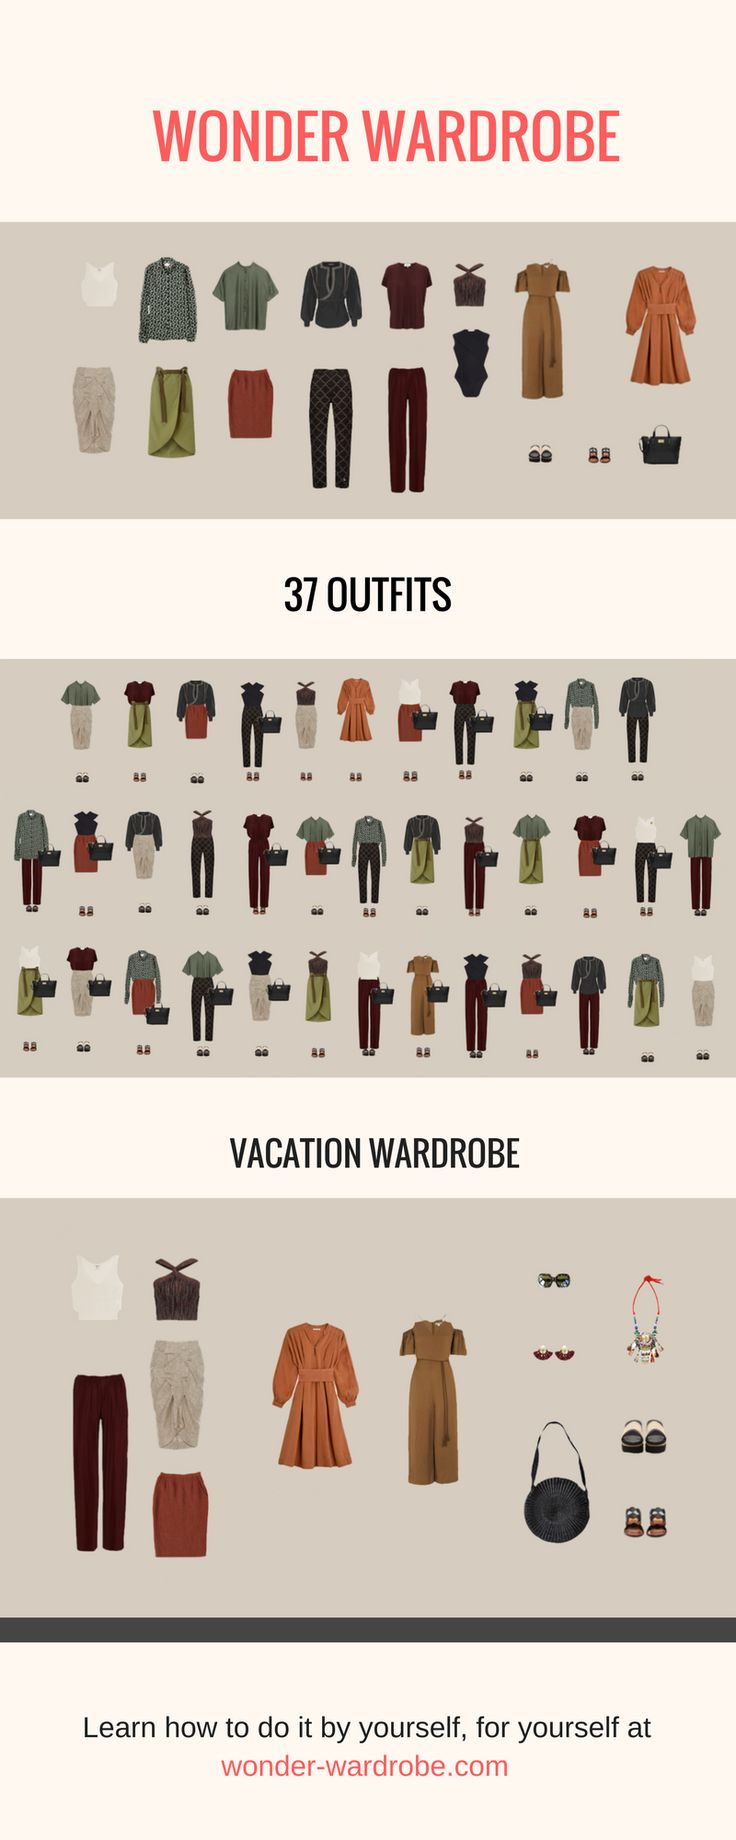 This capsule wardrobe was purposefully created to enhance the beauty of the hourglass body type. The 35/37 interchangeable outfits will accentuate and bring out all the best assets of your body for different purposes: office hours, meeting friends and even going on a summer vacation. All the brands used to compose this wardrobe are ethical and eco-friendly so you can feel beautiful while you save the planet.